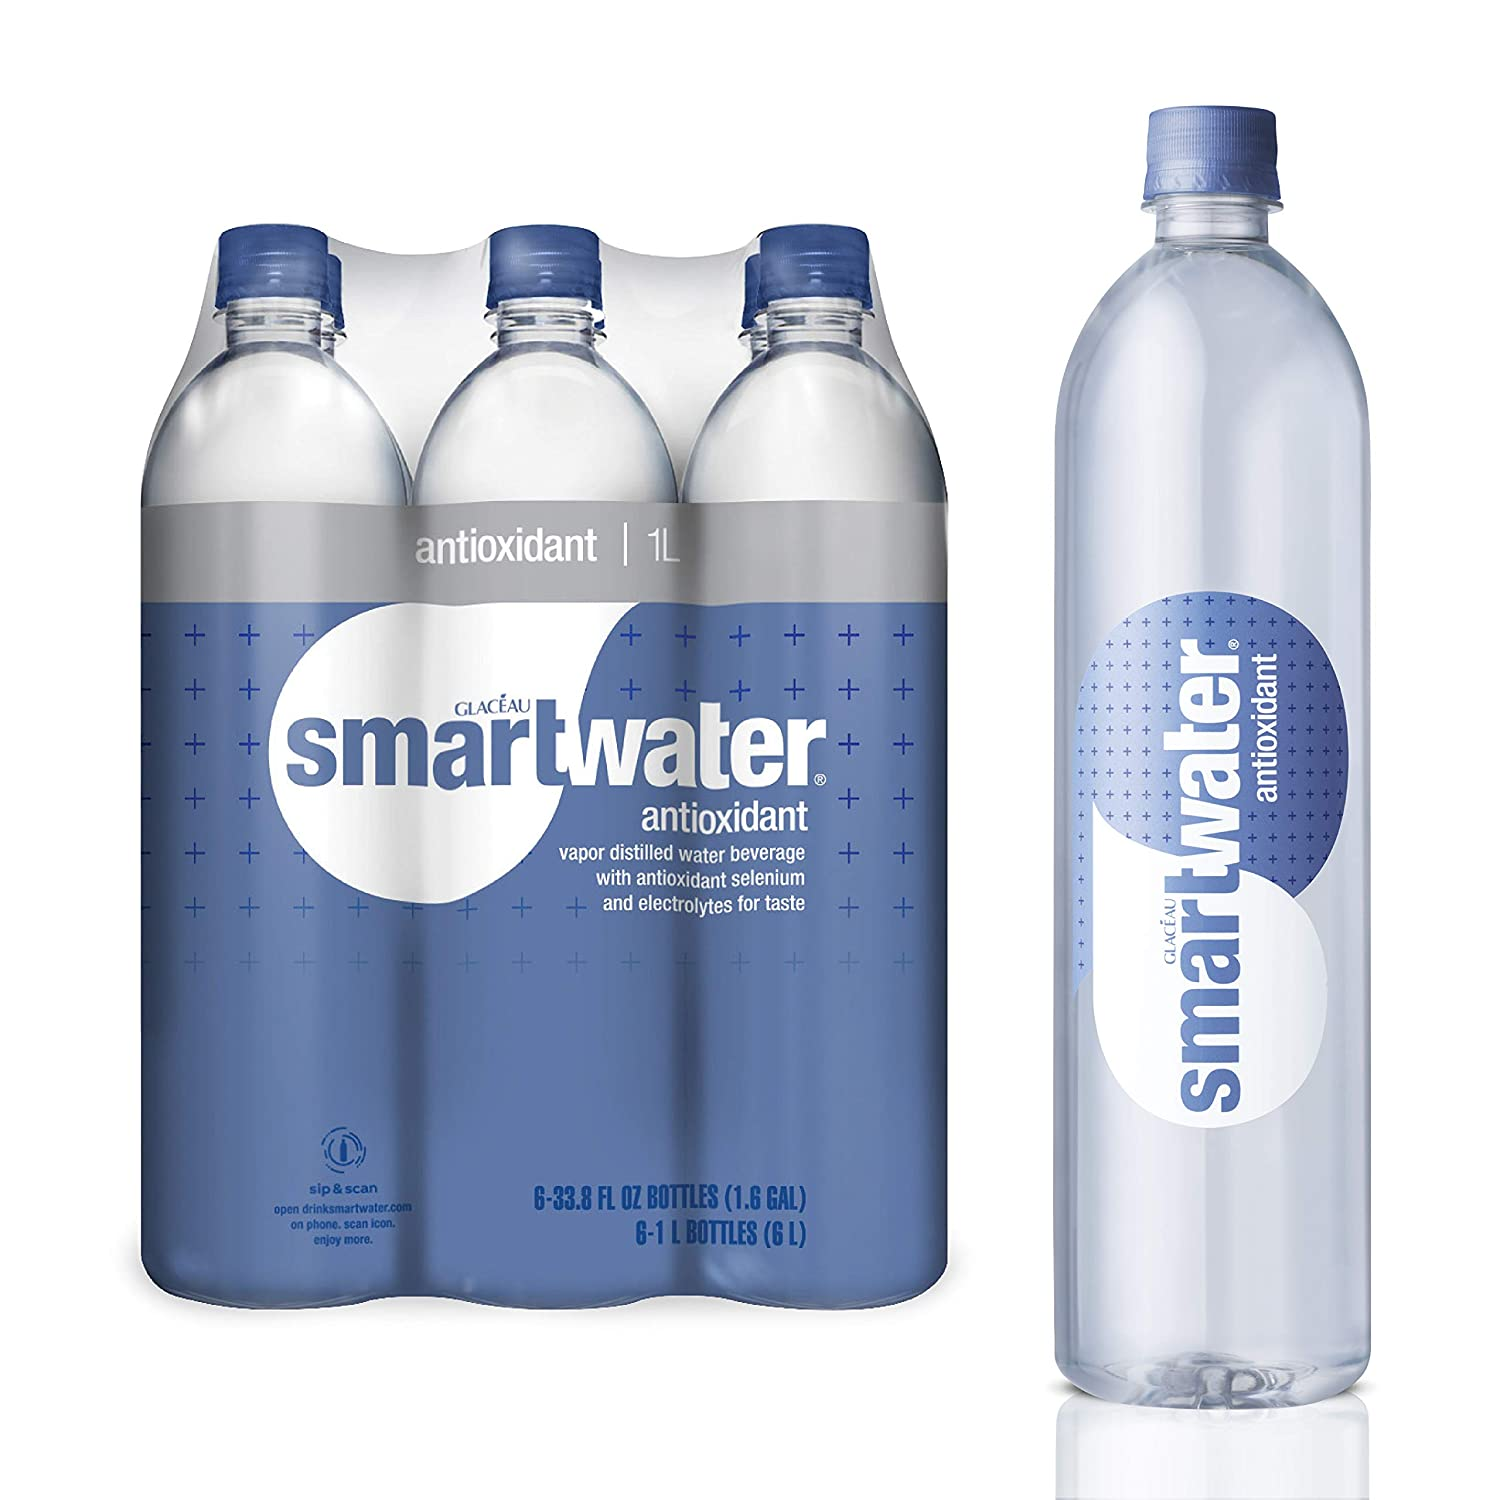 smartwater Antioxidant Selenium, Purely Balanced Ph Vapor Distilled Premium Water